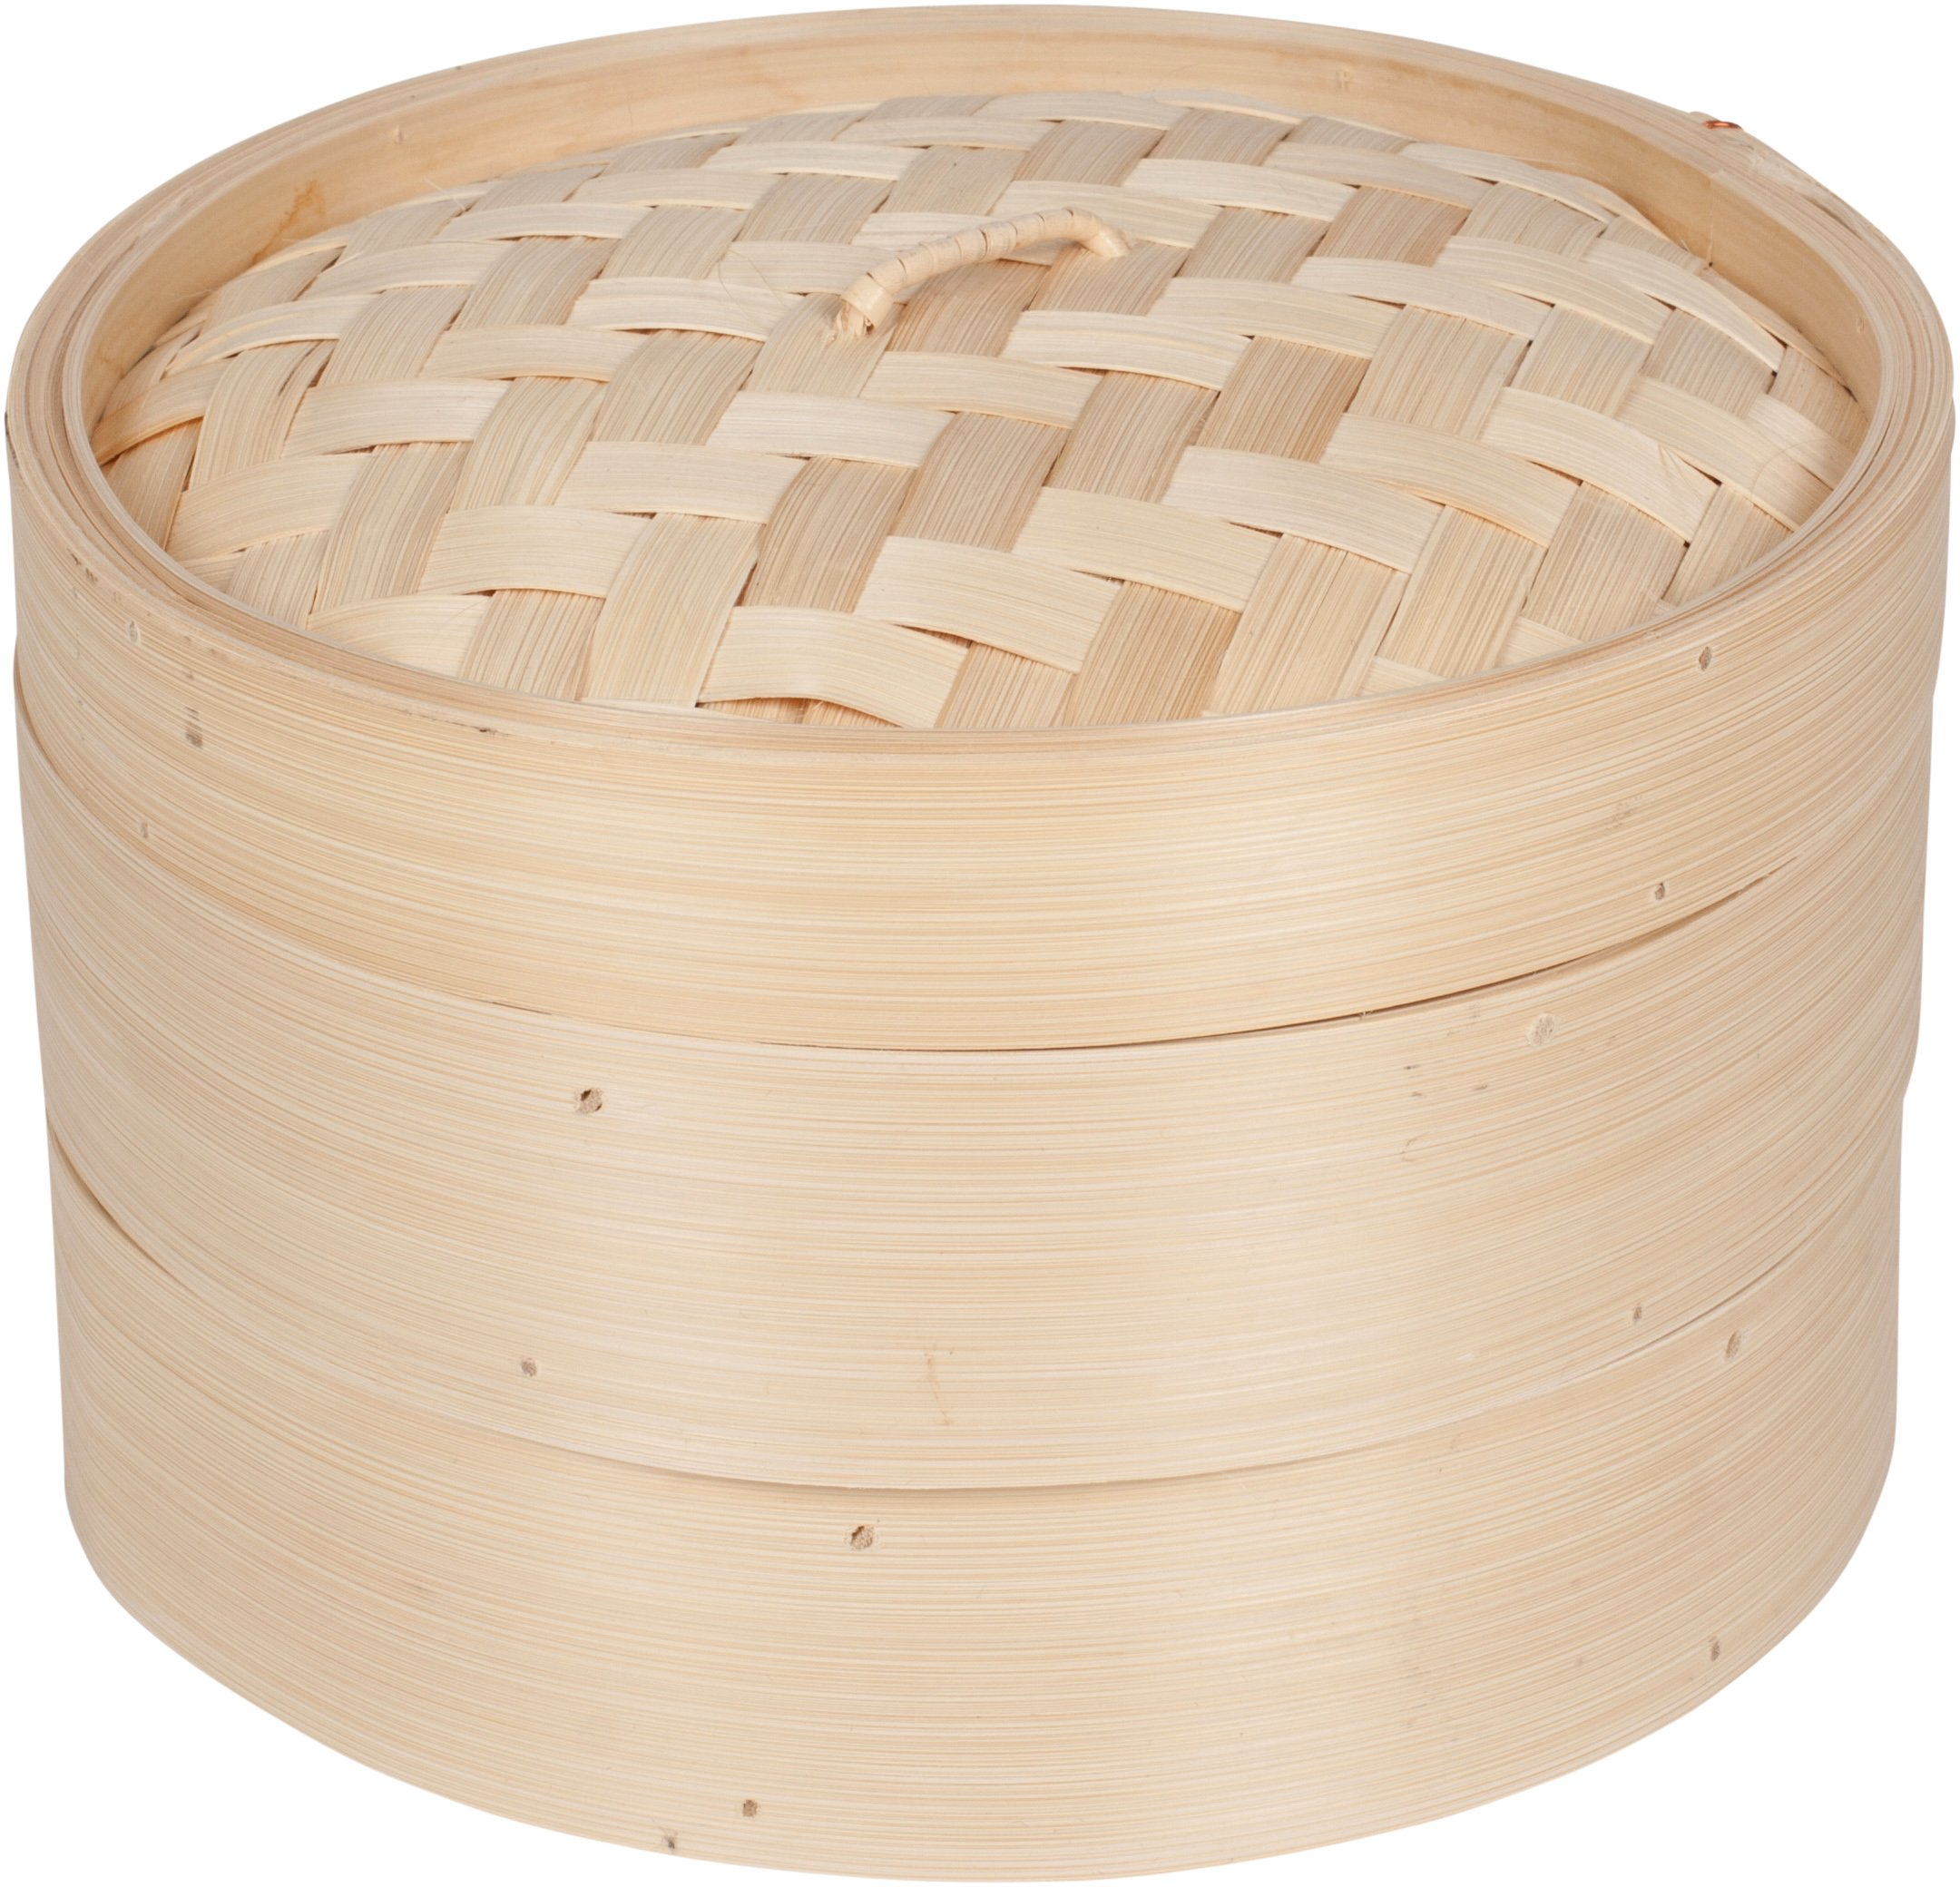 Trademark Innovations 3 Piece Bamboo Steamer, Standard, Tan by Trademark Innovations